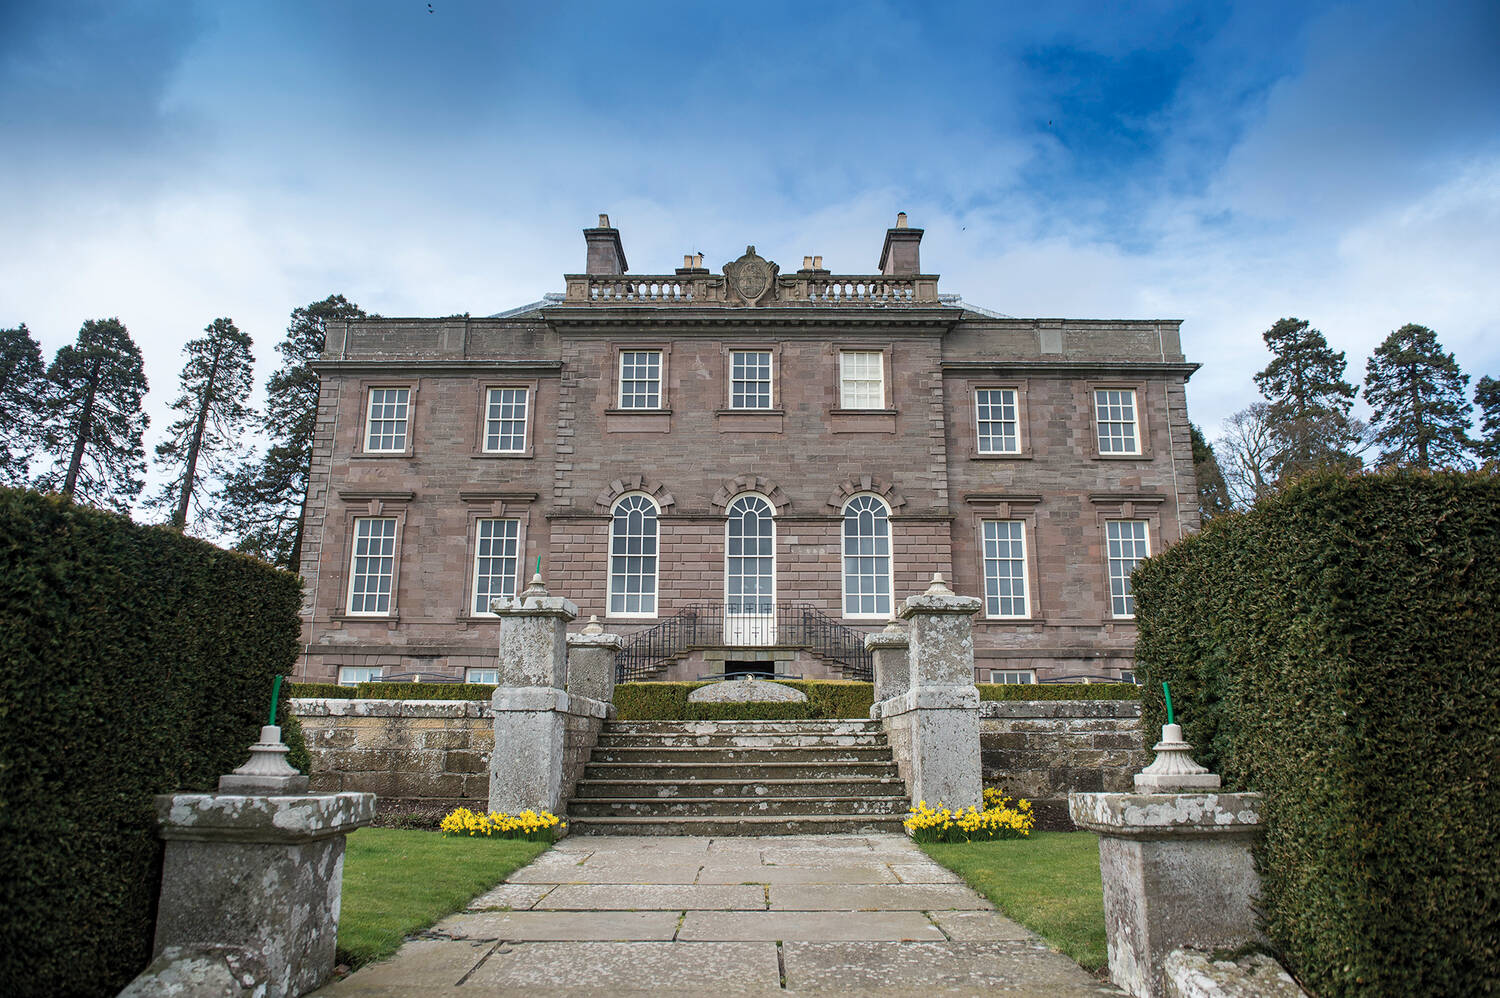 A view standing in front of a large country house, looking up a set of grand stone steps. Neat hedges line the path and clumps of daffodils grow either side of the pillars.